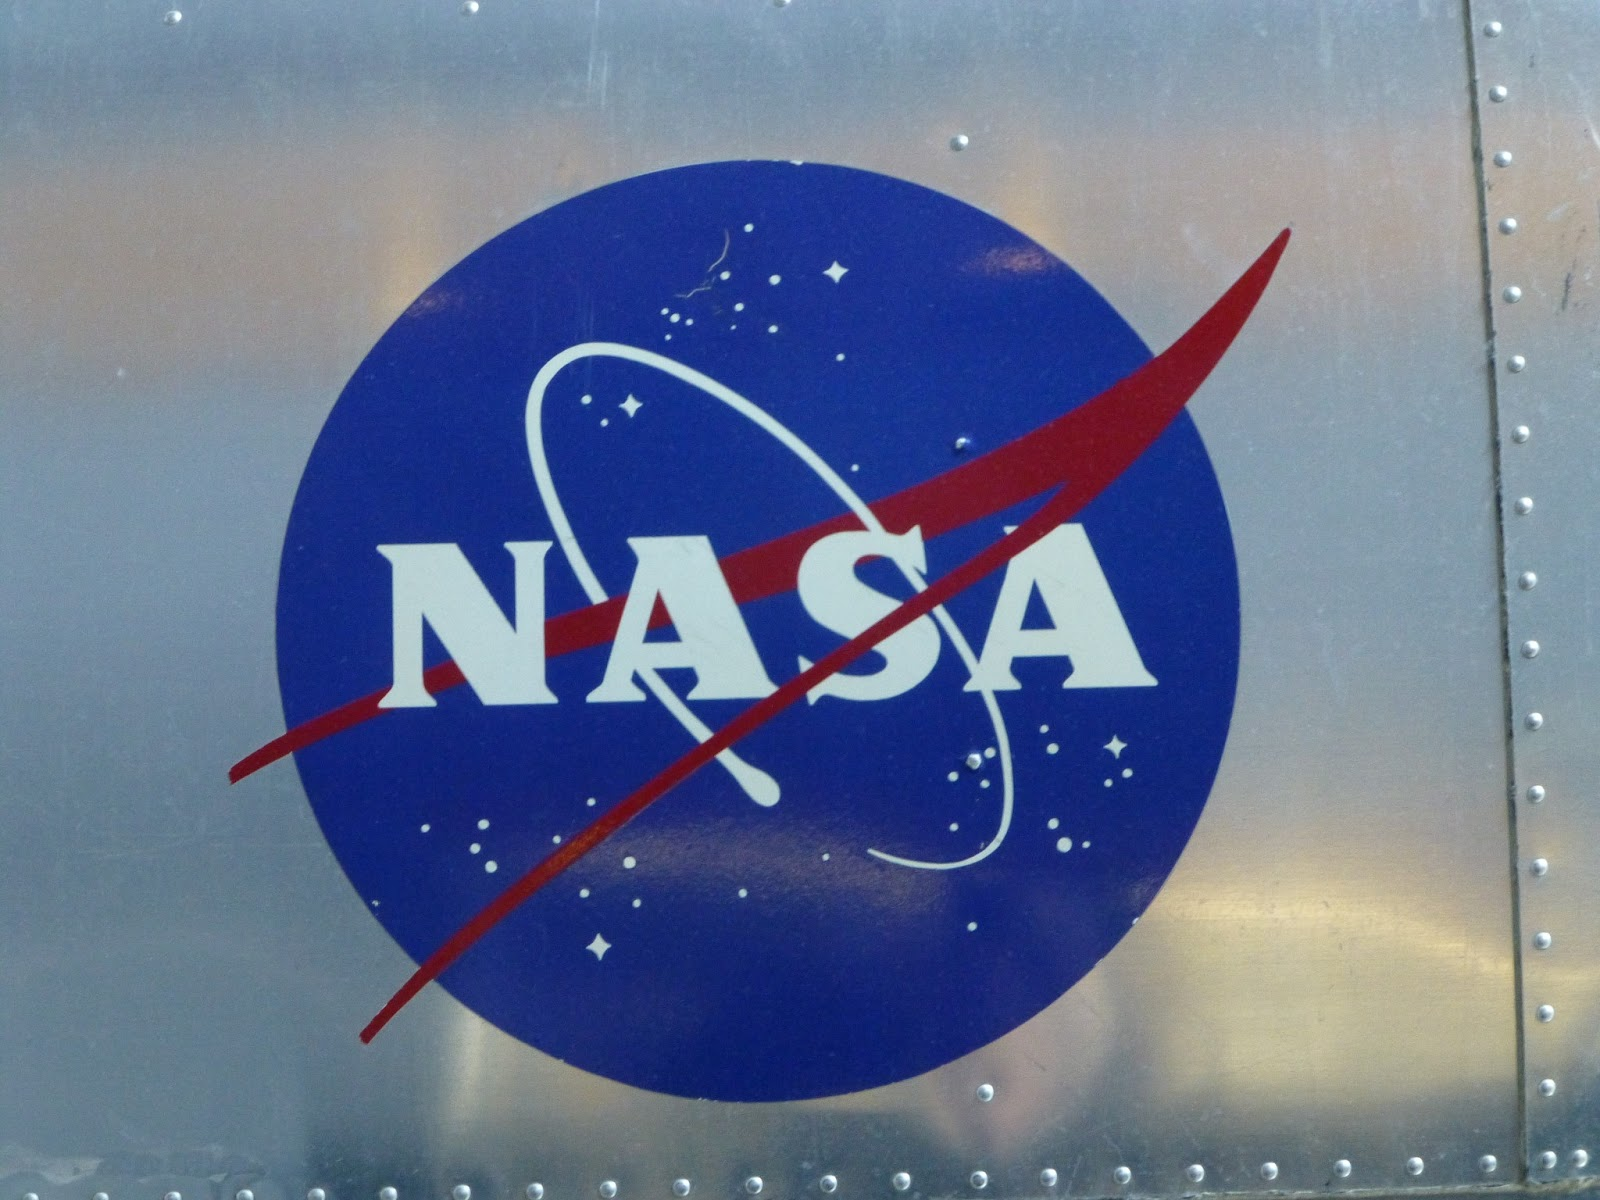 Official NASA Logo 2013 - Pics about space